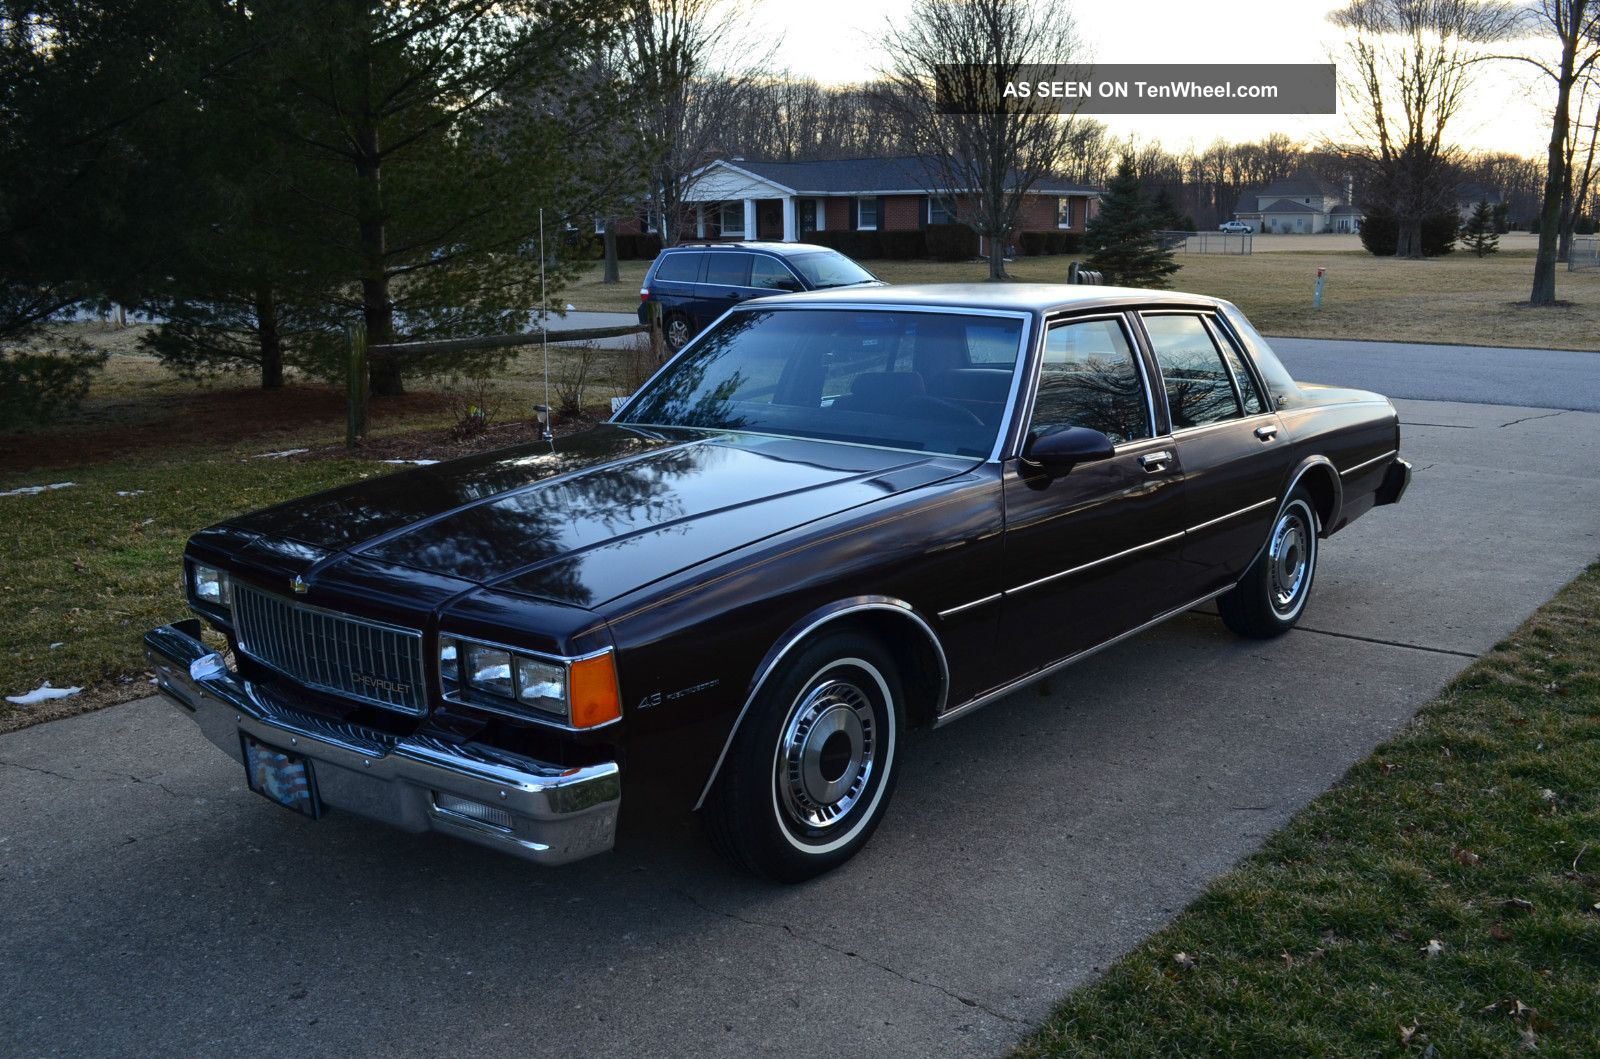 1985 Chevrolet Caprice Classic Sedan 4  Door 4. 3l Caprice photo 6